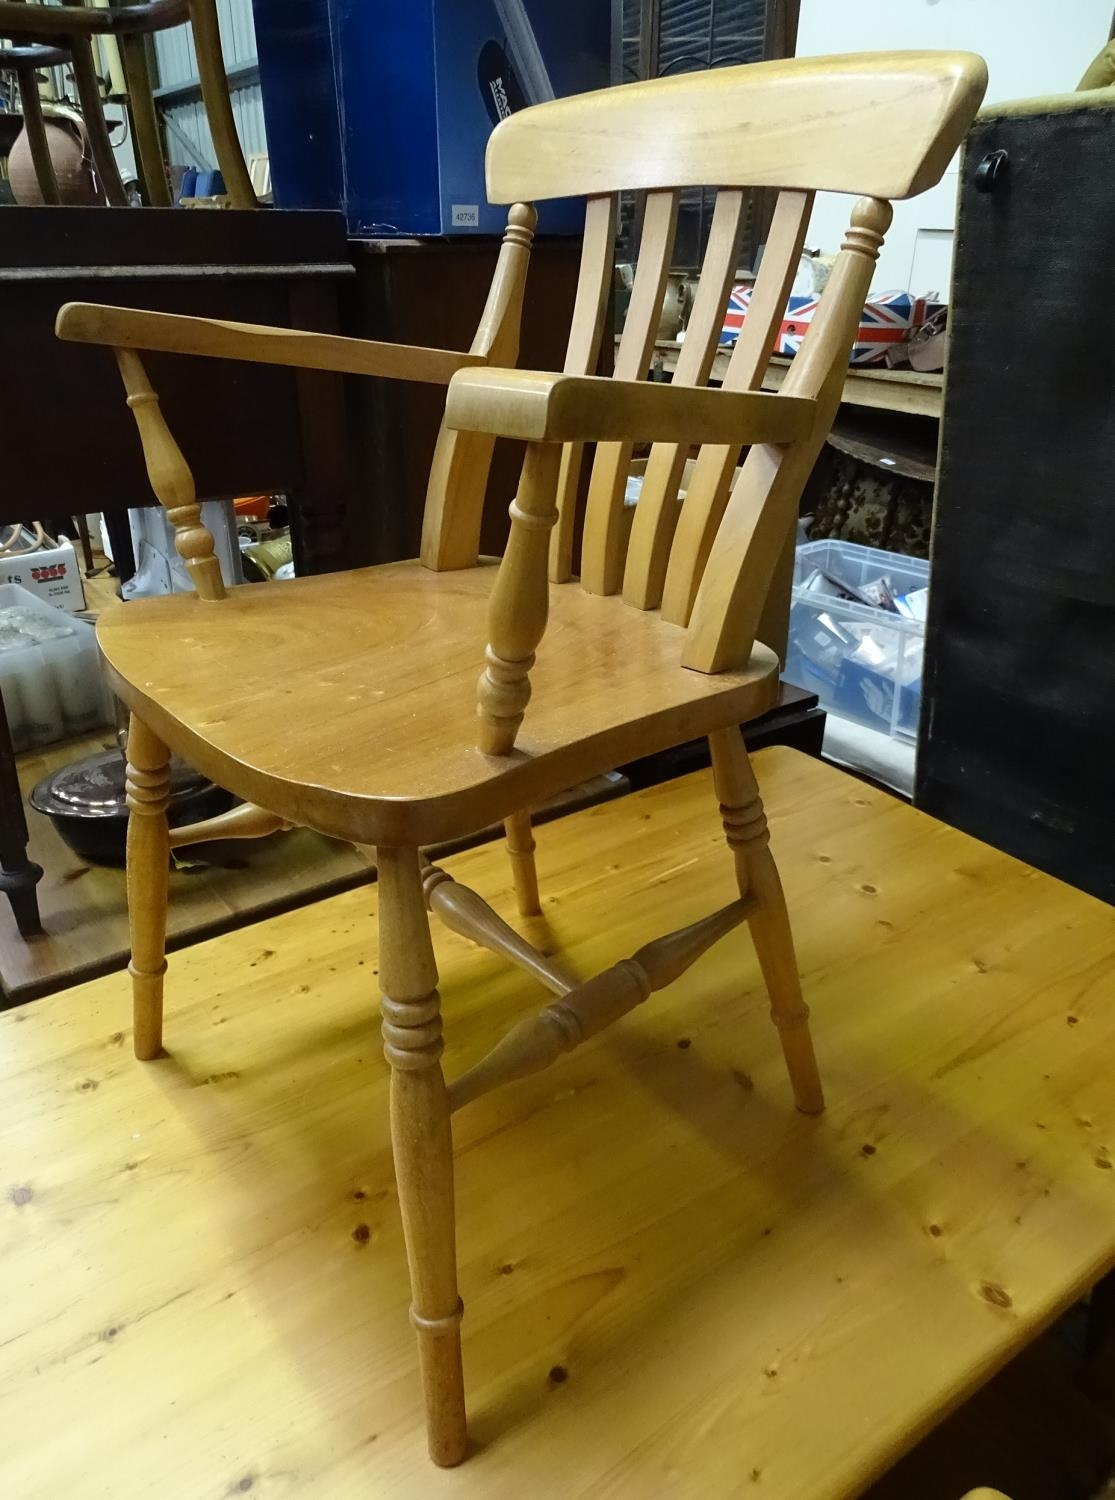 A pine dining table with 6 chairs Please Note - we do not make reference to the condition of lots - Image 2 of 5